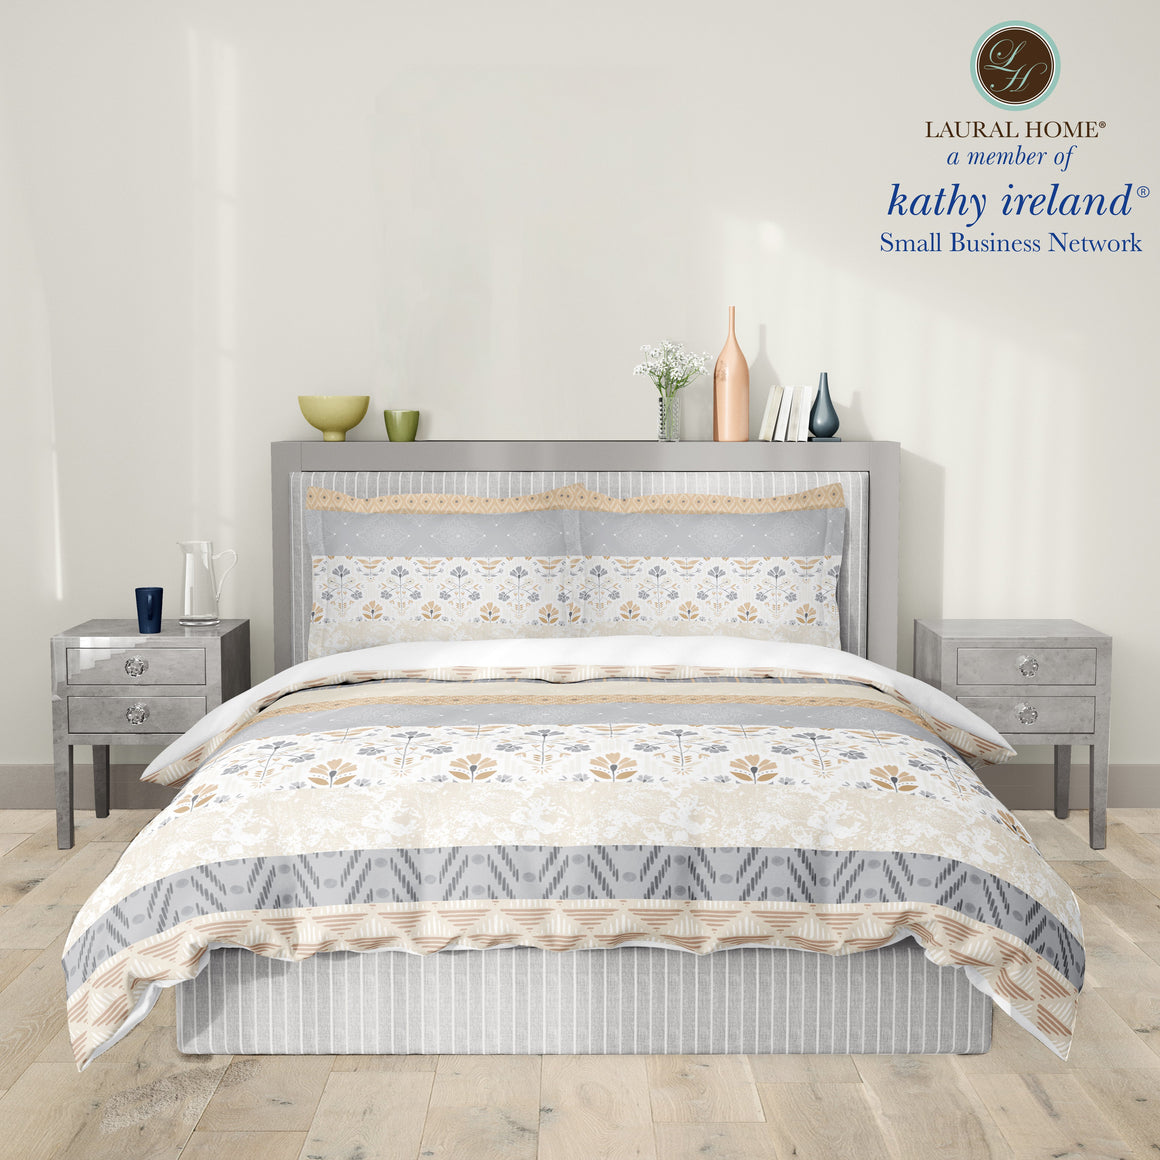 Laural Home kathy ireland® Small Business Network Member Peaceful Elegance Stripe Comforter